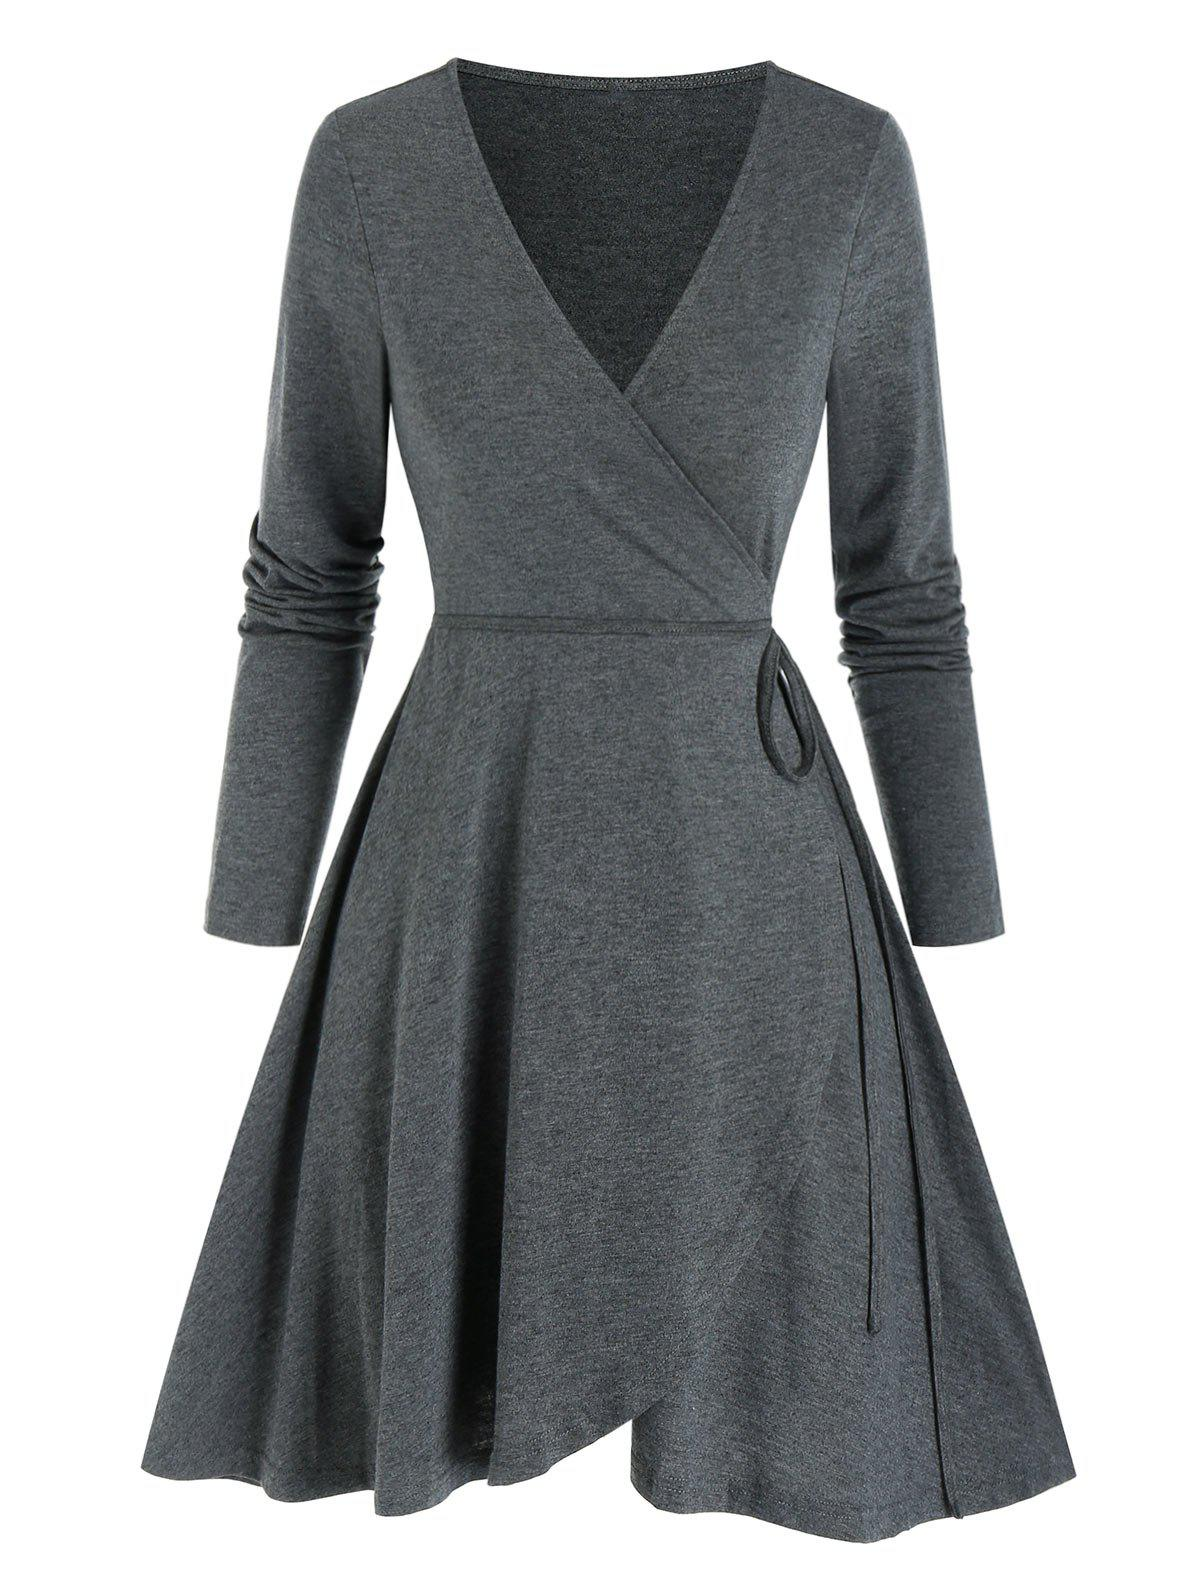 Long Sleeve Heathered Mini Wrap Dress - ASH GRAY 3XL